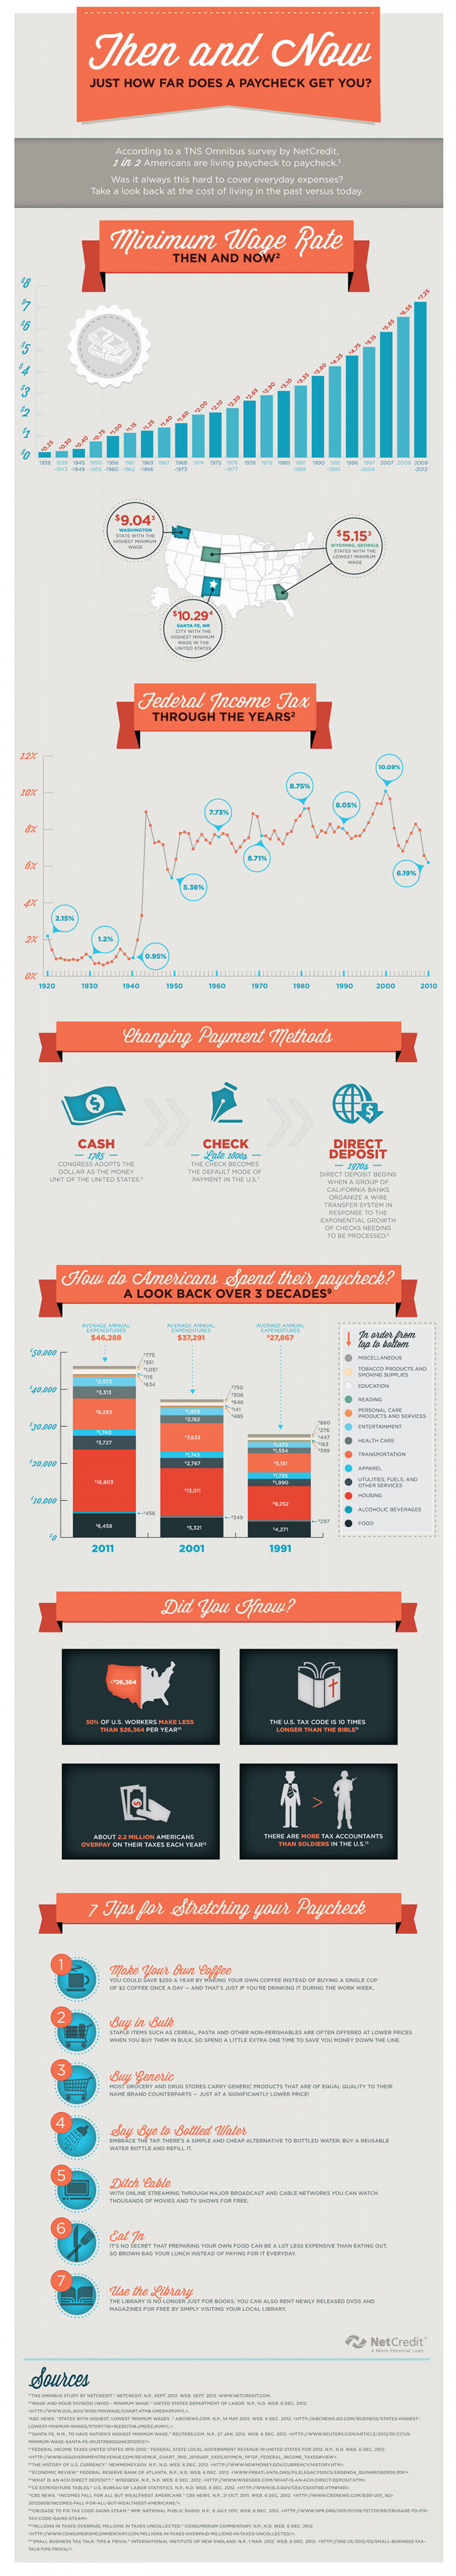 Then & Now: How Far Does a Paycheck Get You? Infographic